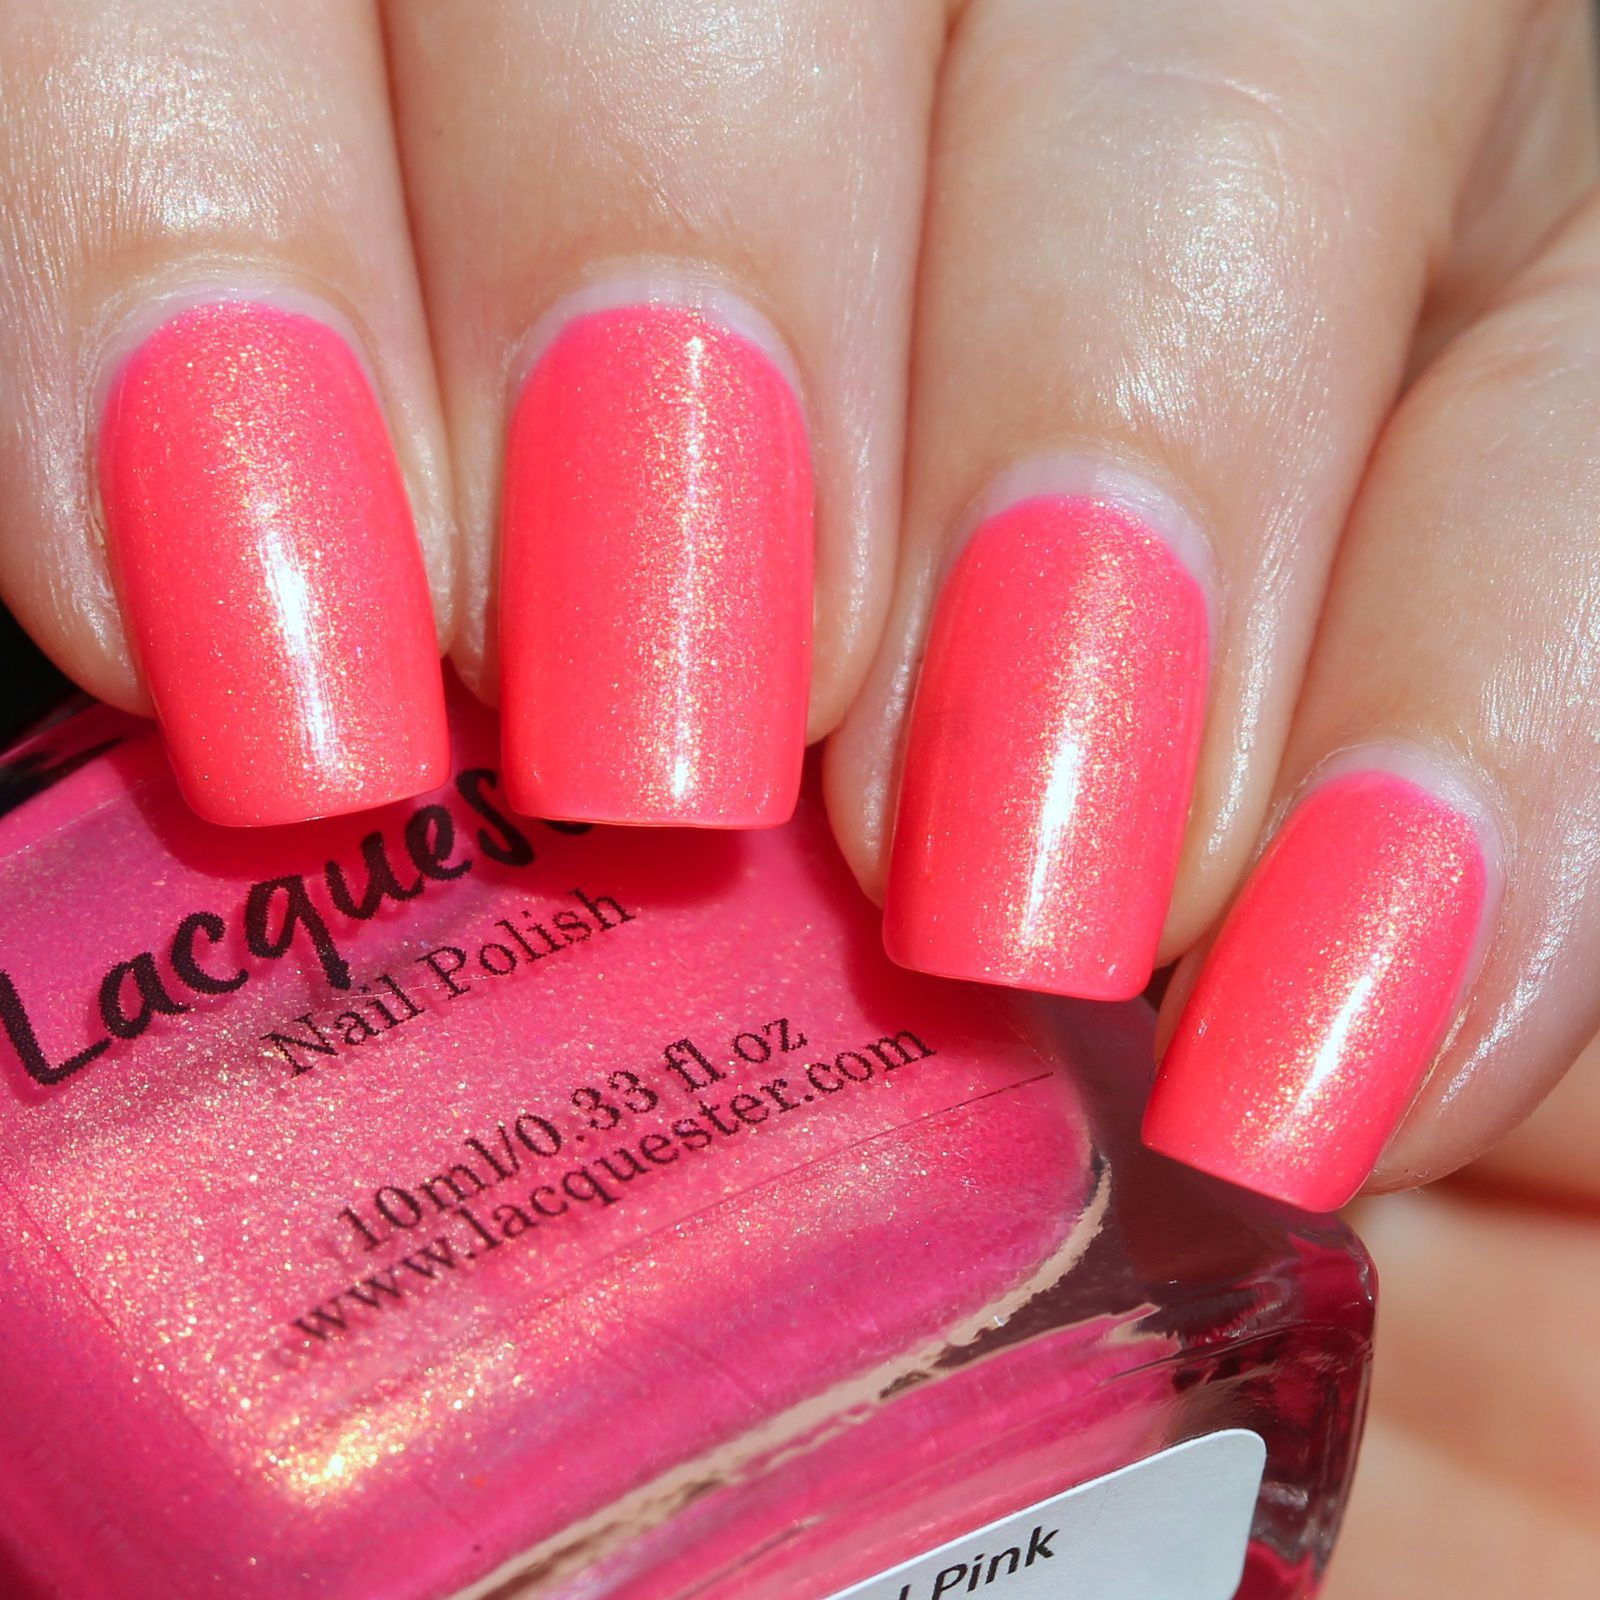 Duri Rejuvacote / Lacquester Katy Did Pink / Sally Hansen Miracle Gel Top Coat